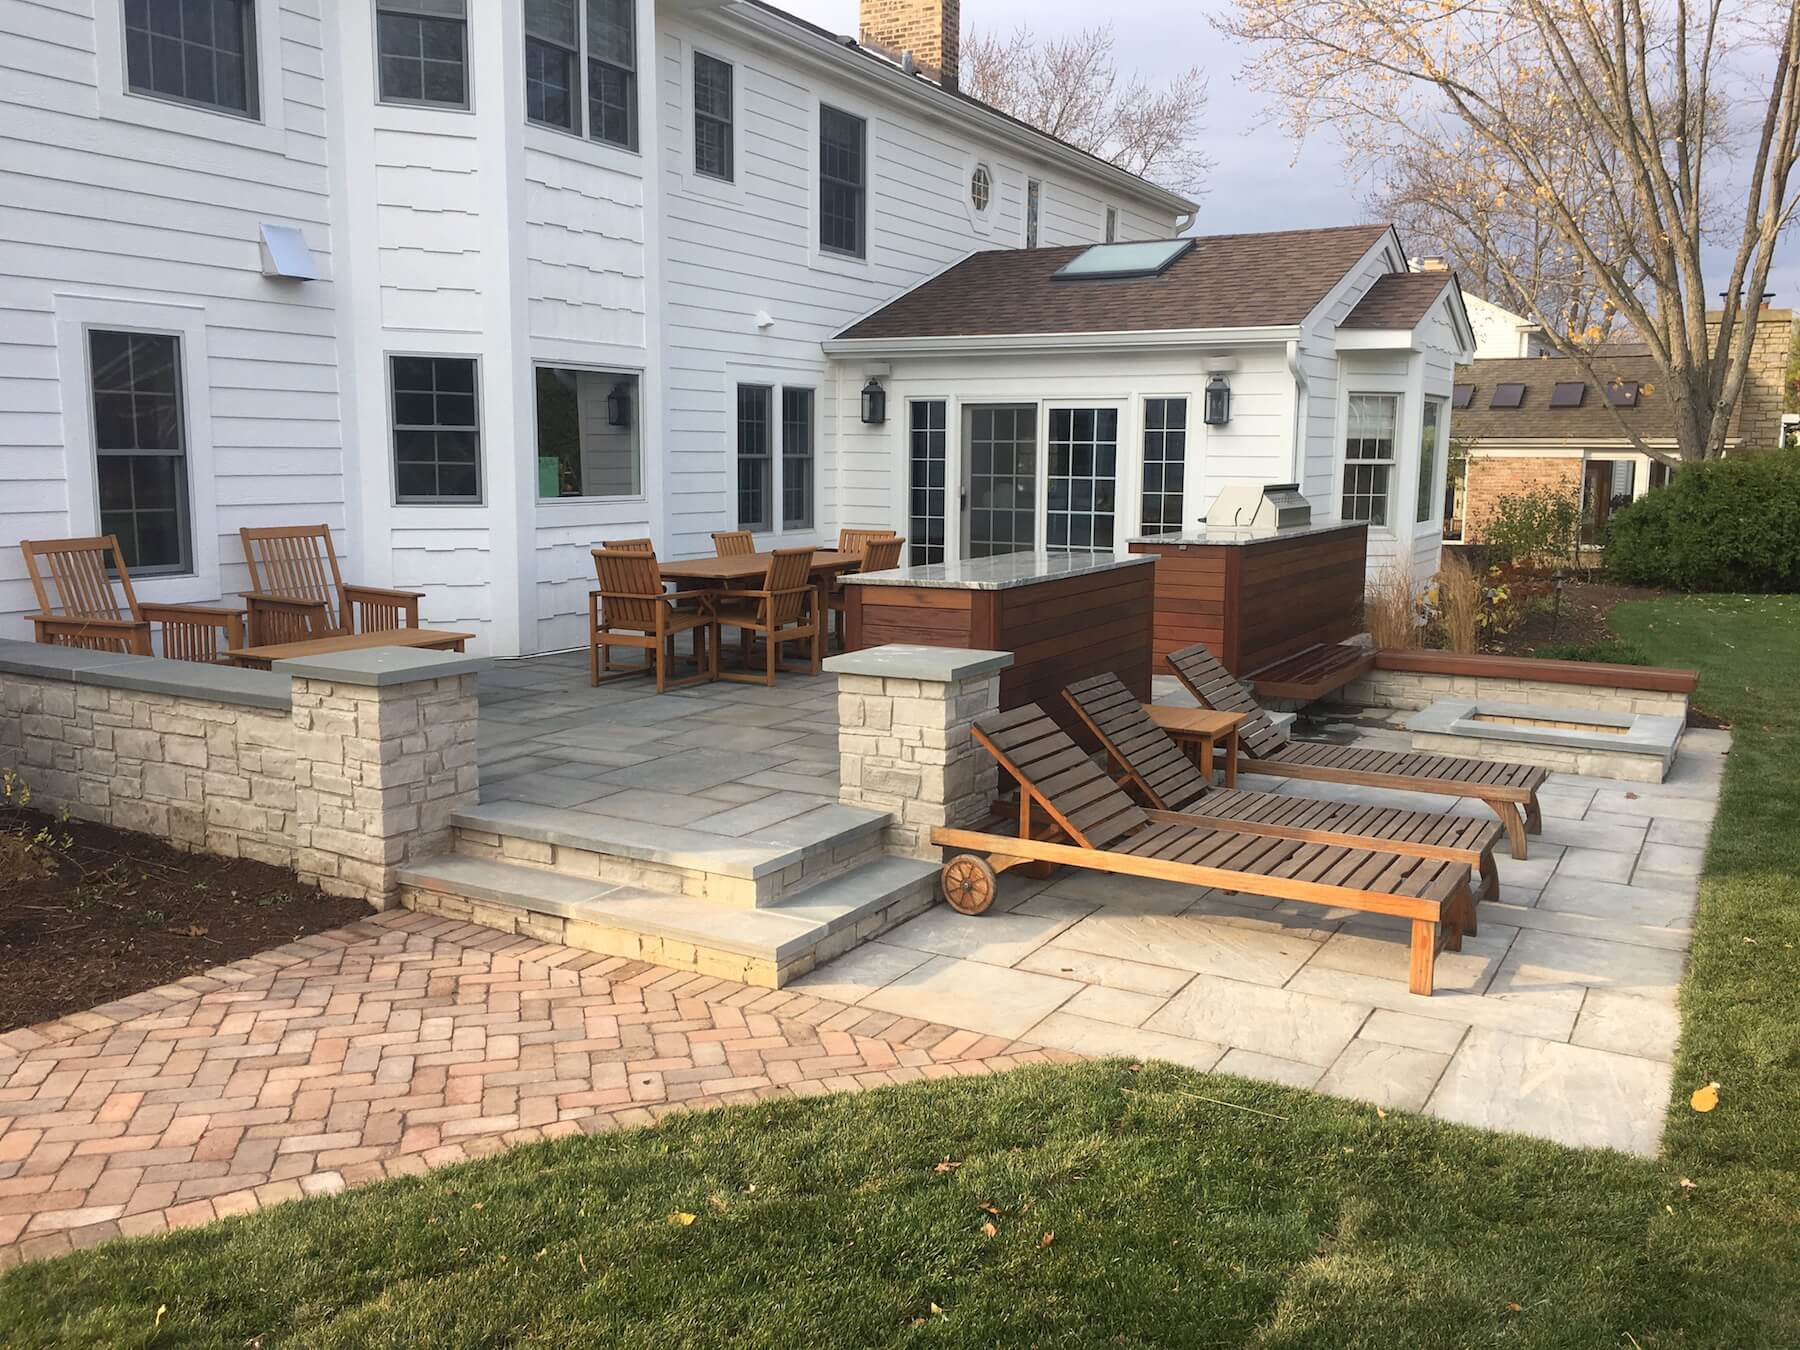 Stone Paver Patio - Denver - Roof Decks, Pergolas, and ... on Patio With Deck Ideas id=50481